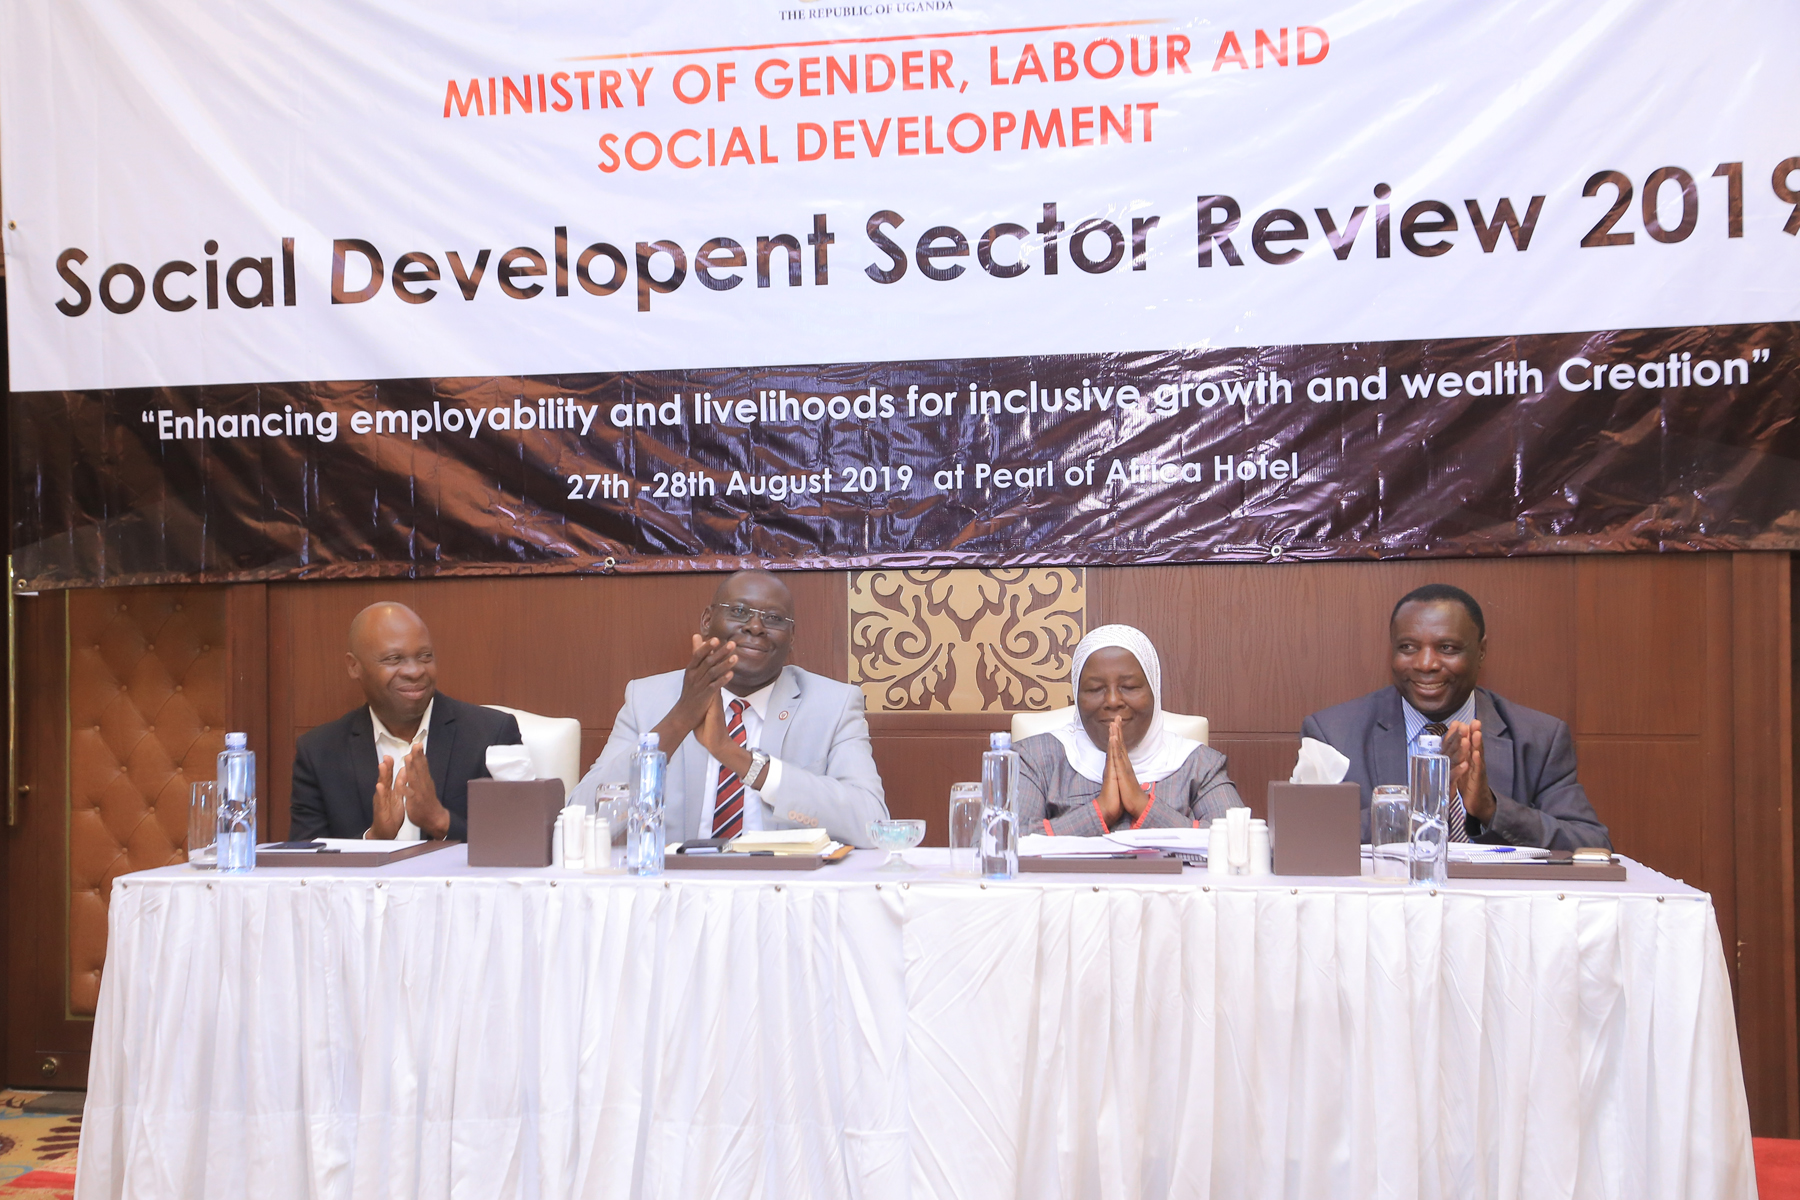 SOCIAL DEVELOPMENT SECTOR REVIEW, 2019